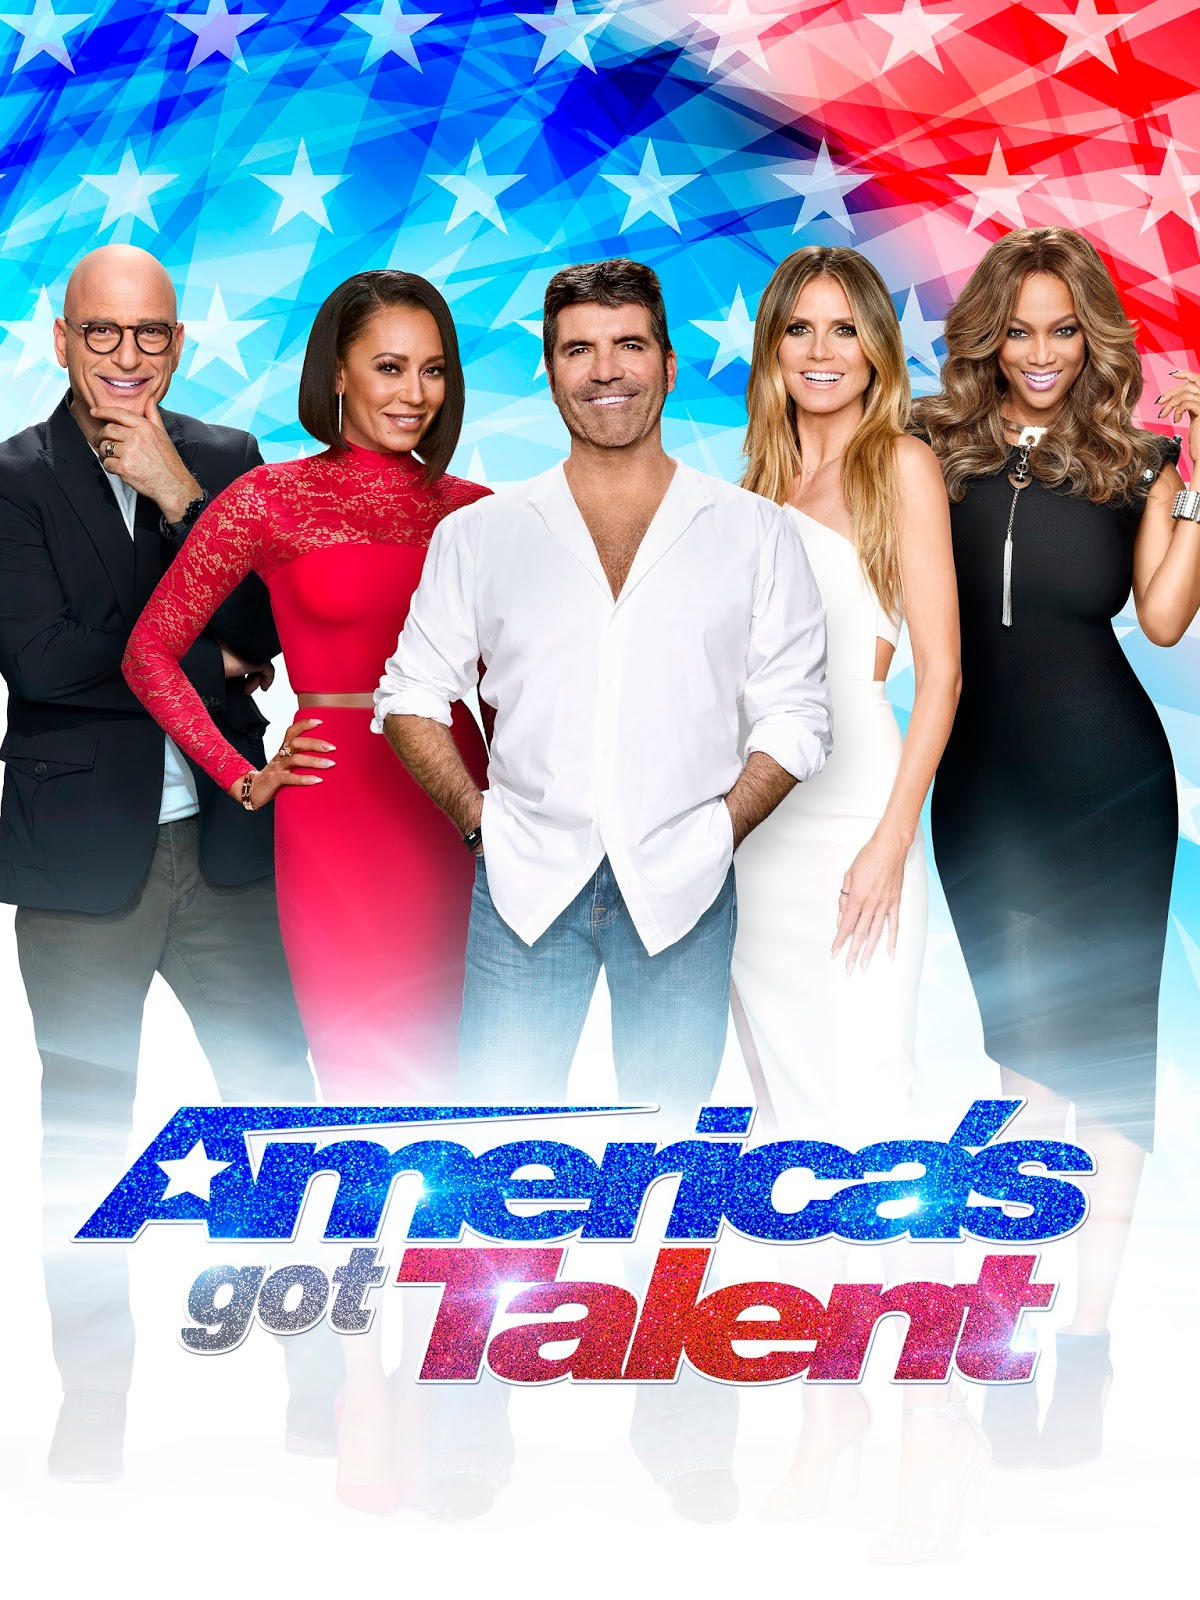 America's Got Talent Auditions in Savannah Georgia 11/19: Also List of Other Audition Cities  via  www.productreviewmom.com